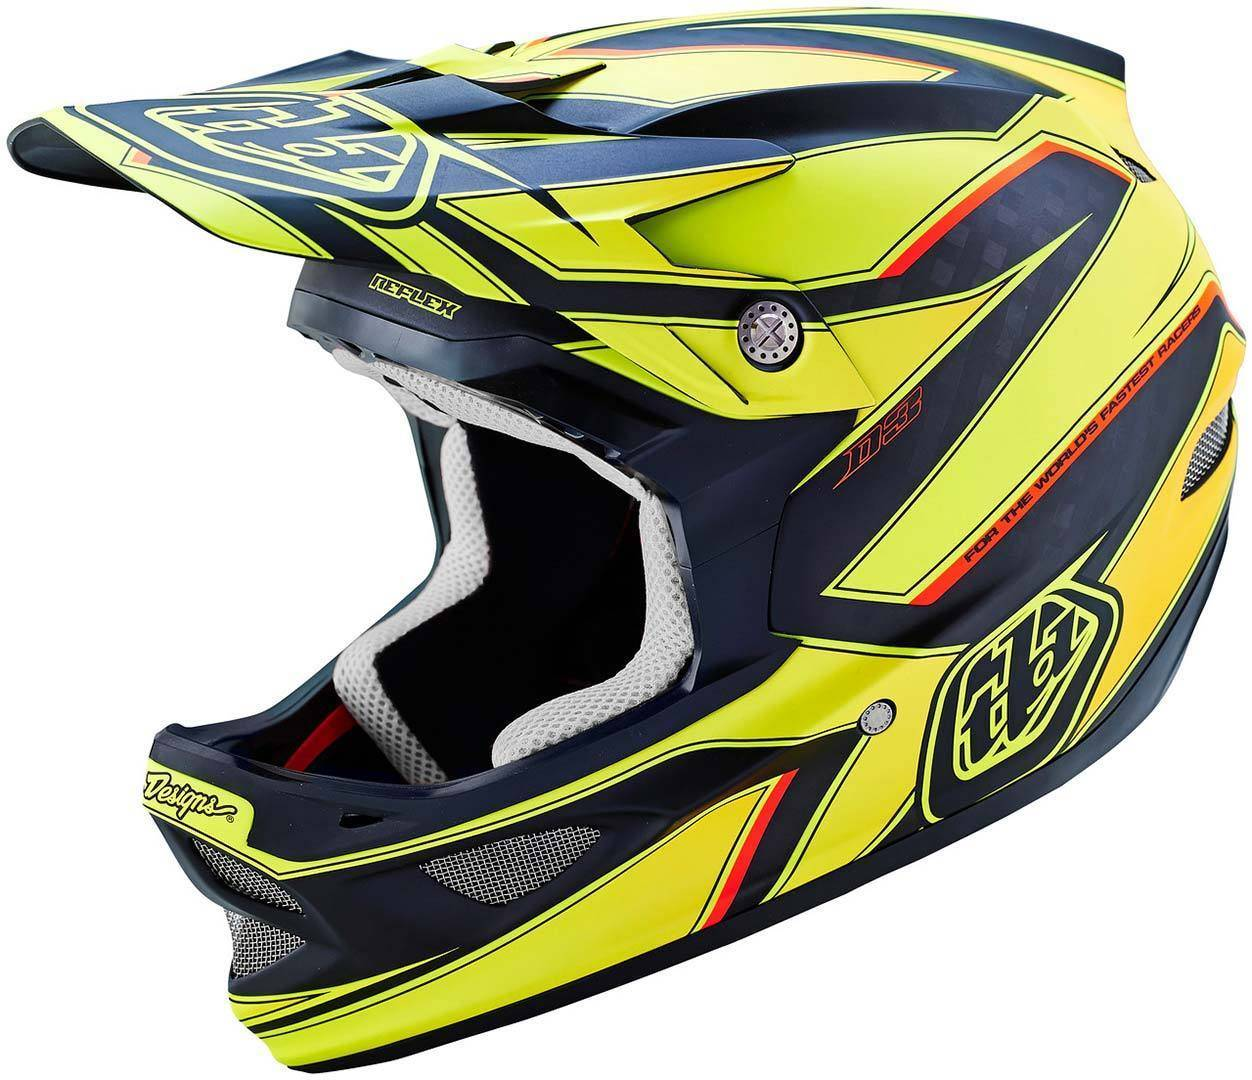 Lee Troy Lee Designs D3 Reflex Yellow Helmet  - Size: Extra Small